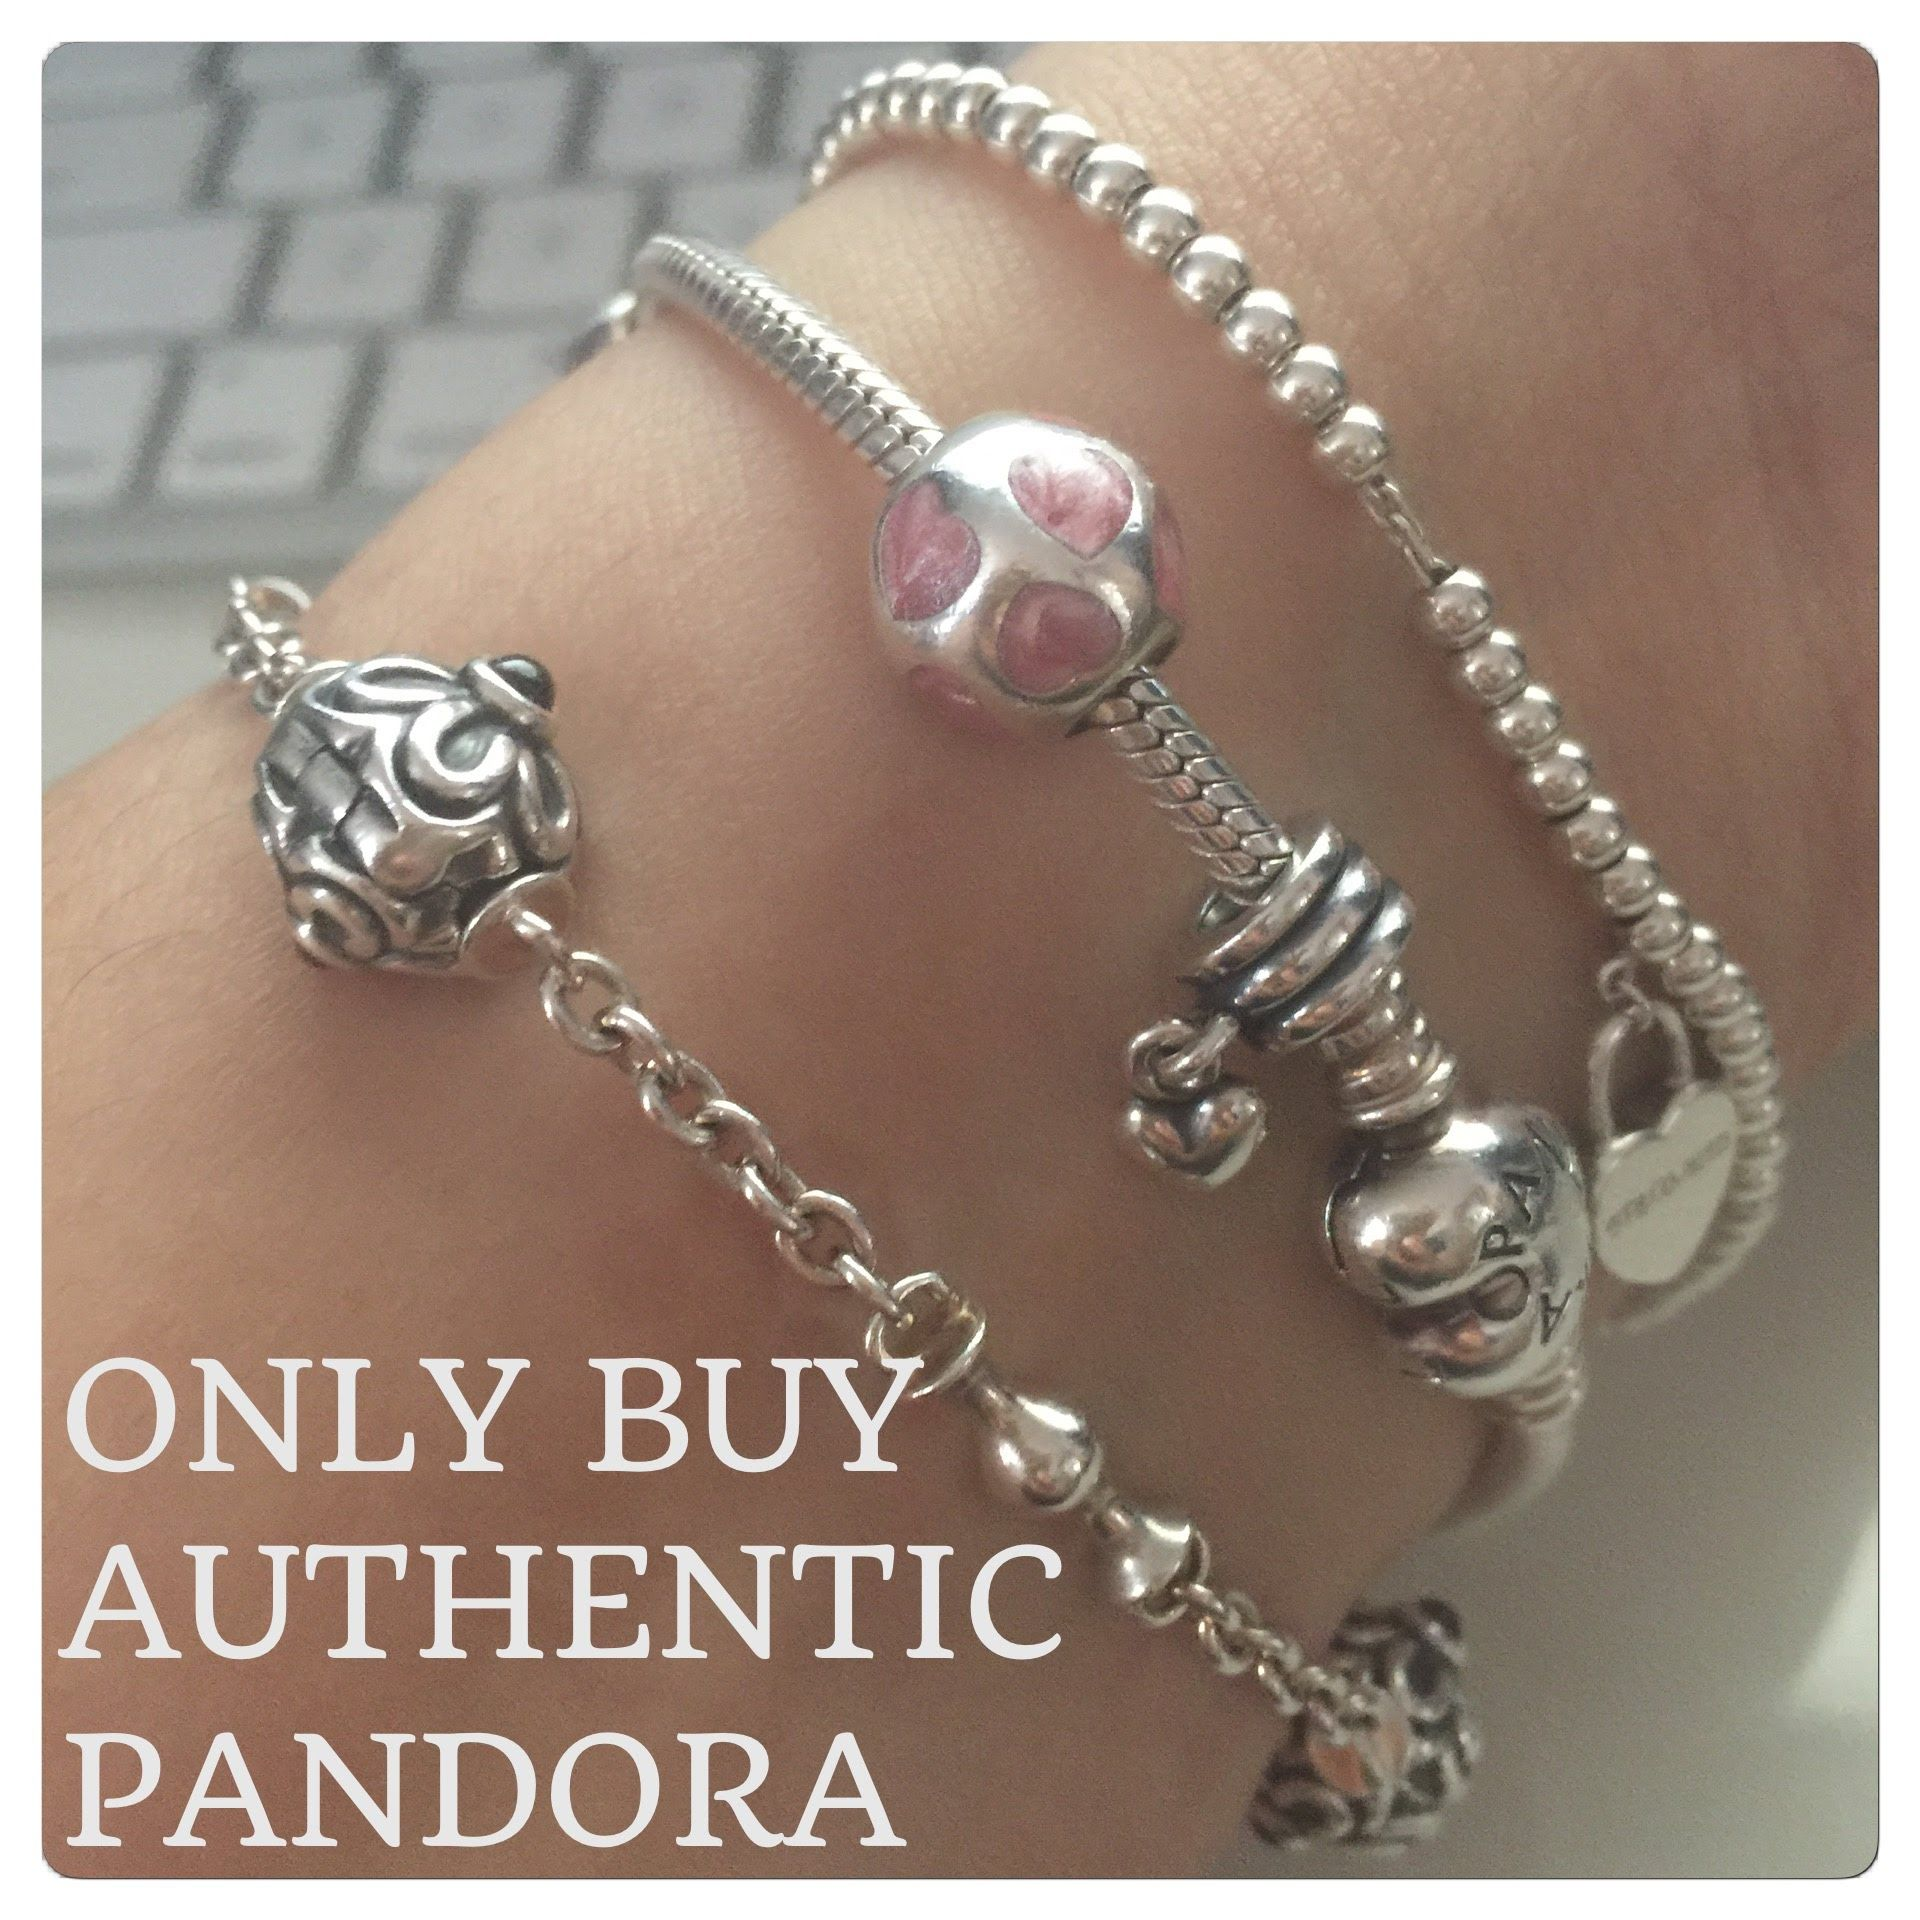 HOW TO SPOT FAKE PANDORA ONLINE + HOW TO BUY AUTHENTIC PANDORA ONLINE 2015